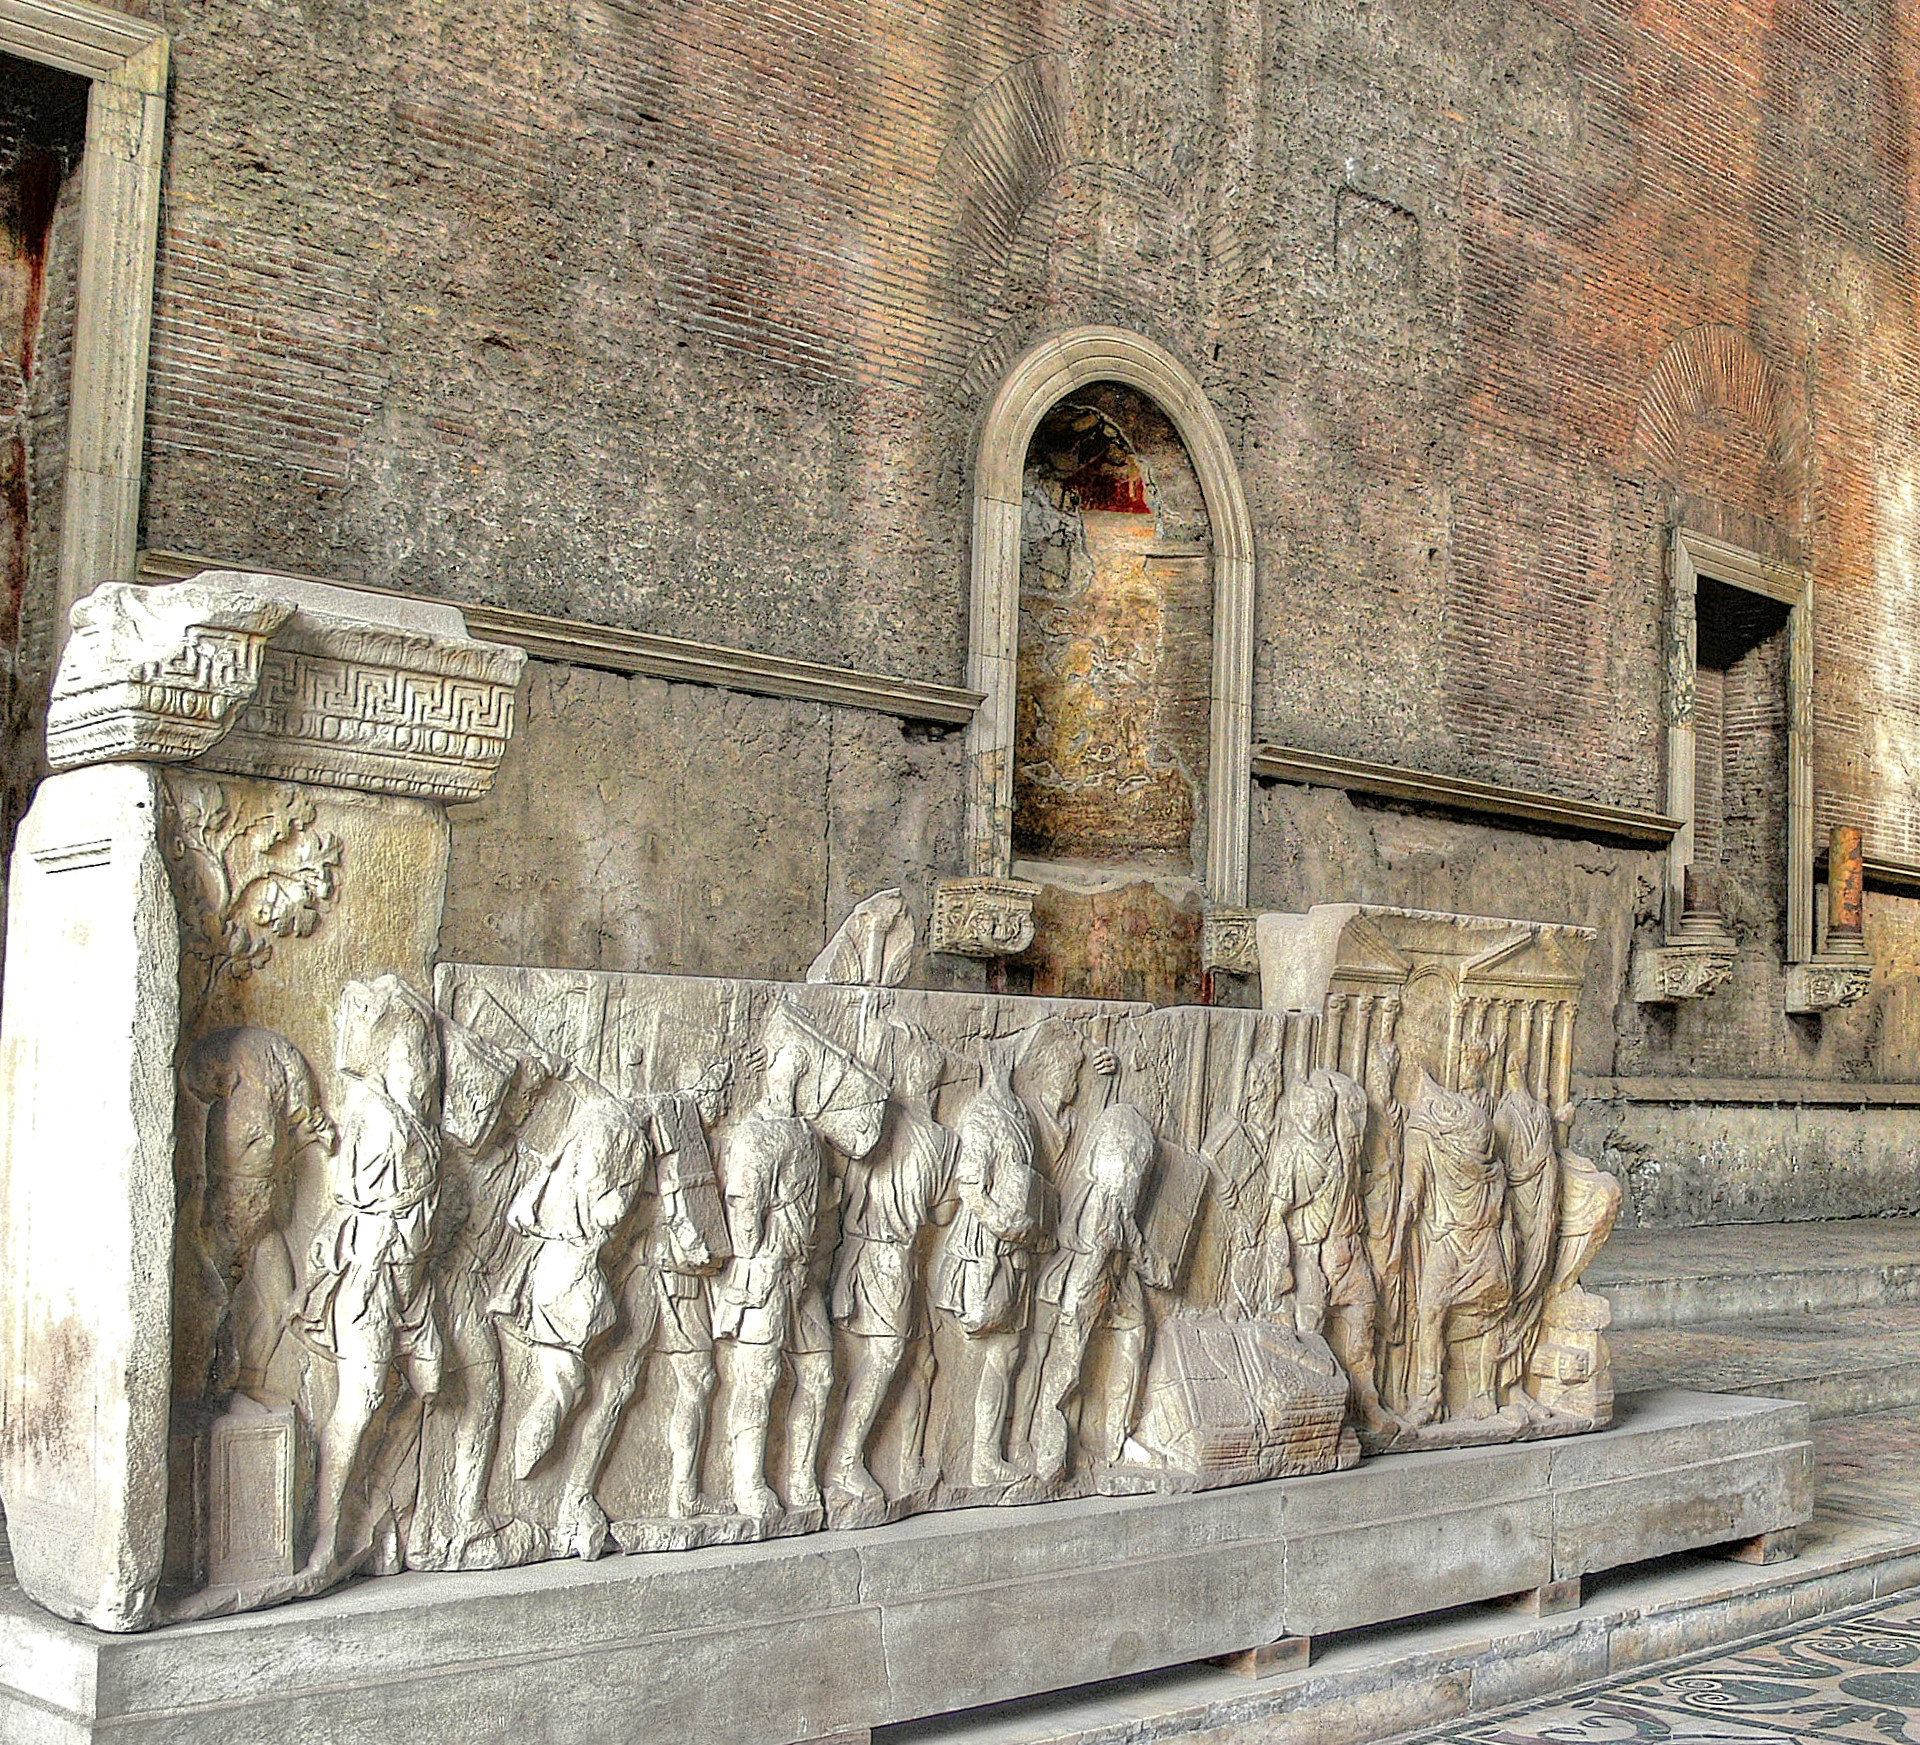 Marble carvings, perhaps the parapets of the tiered seating, with scenes of the reign of Trajan (98-117 AD) destruction of the debt wlls and (right) institution of the public food supply.